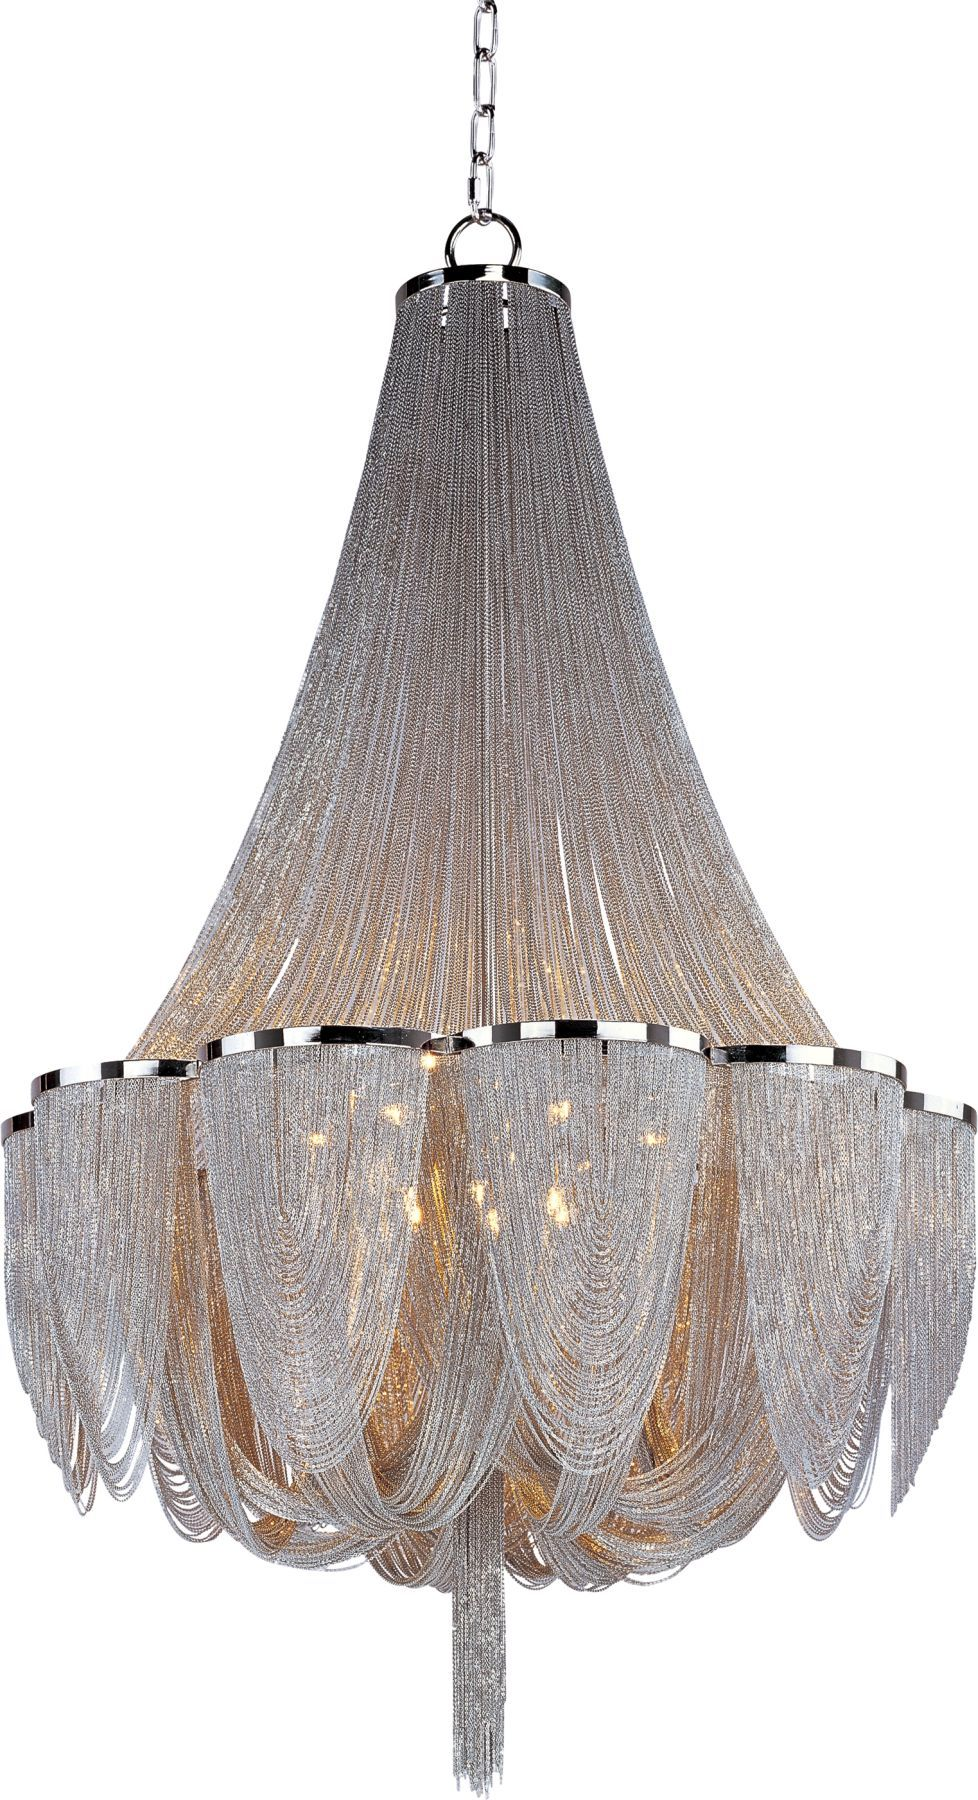 Chandelier chandeliers pinterest chandeliers chains and lights chandelier audiocablefo